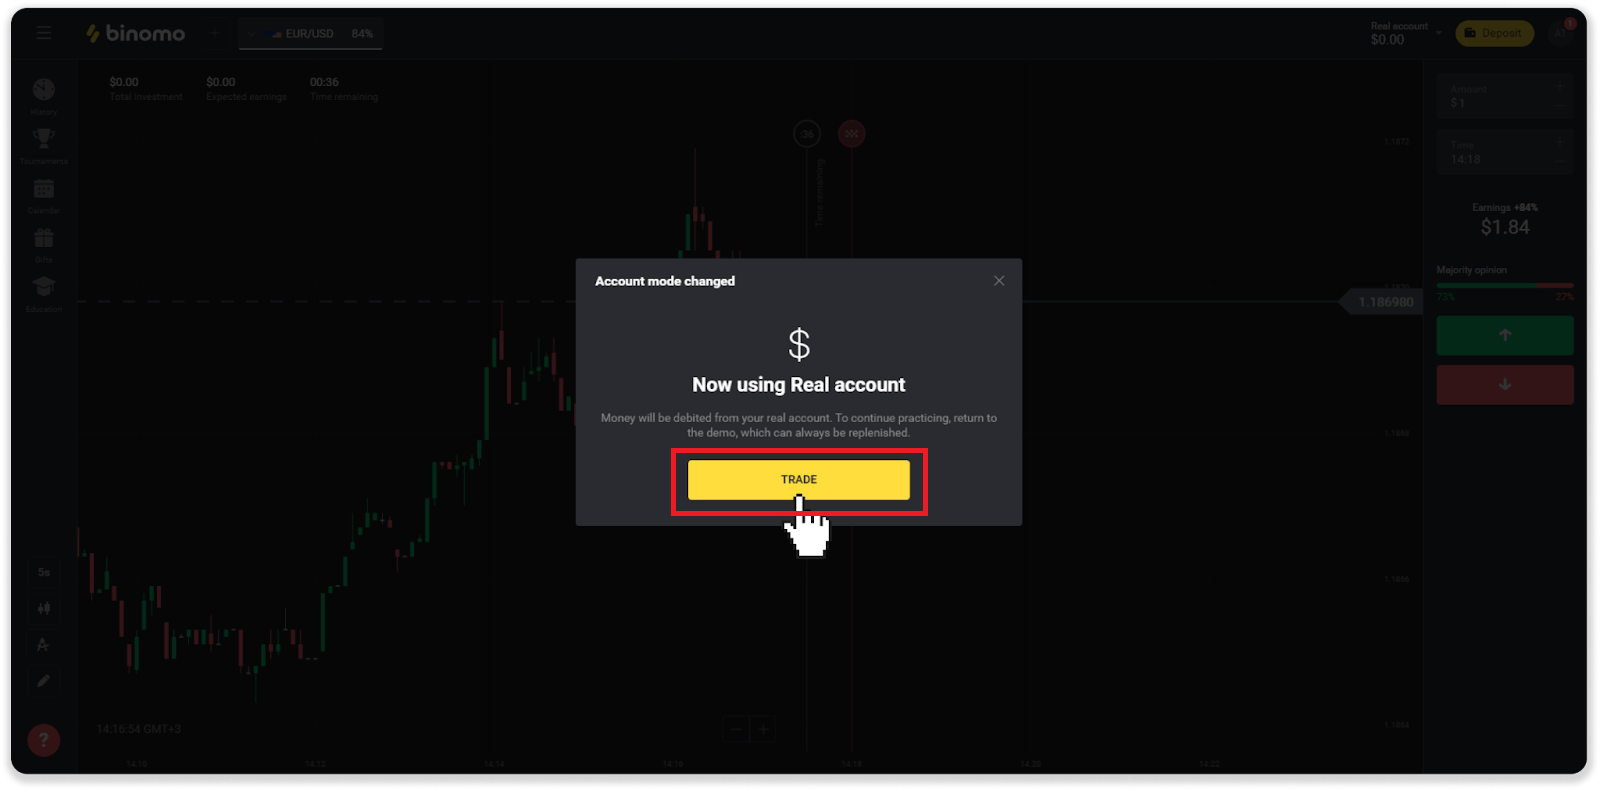 How to Trade at Binomo for Beginners